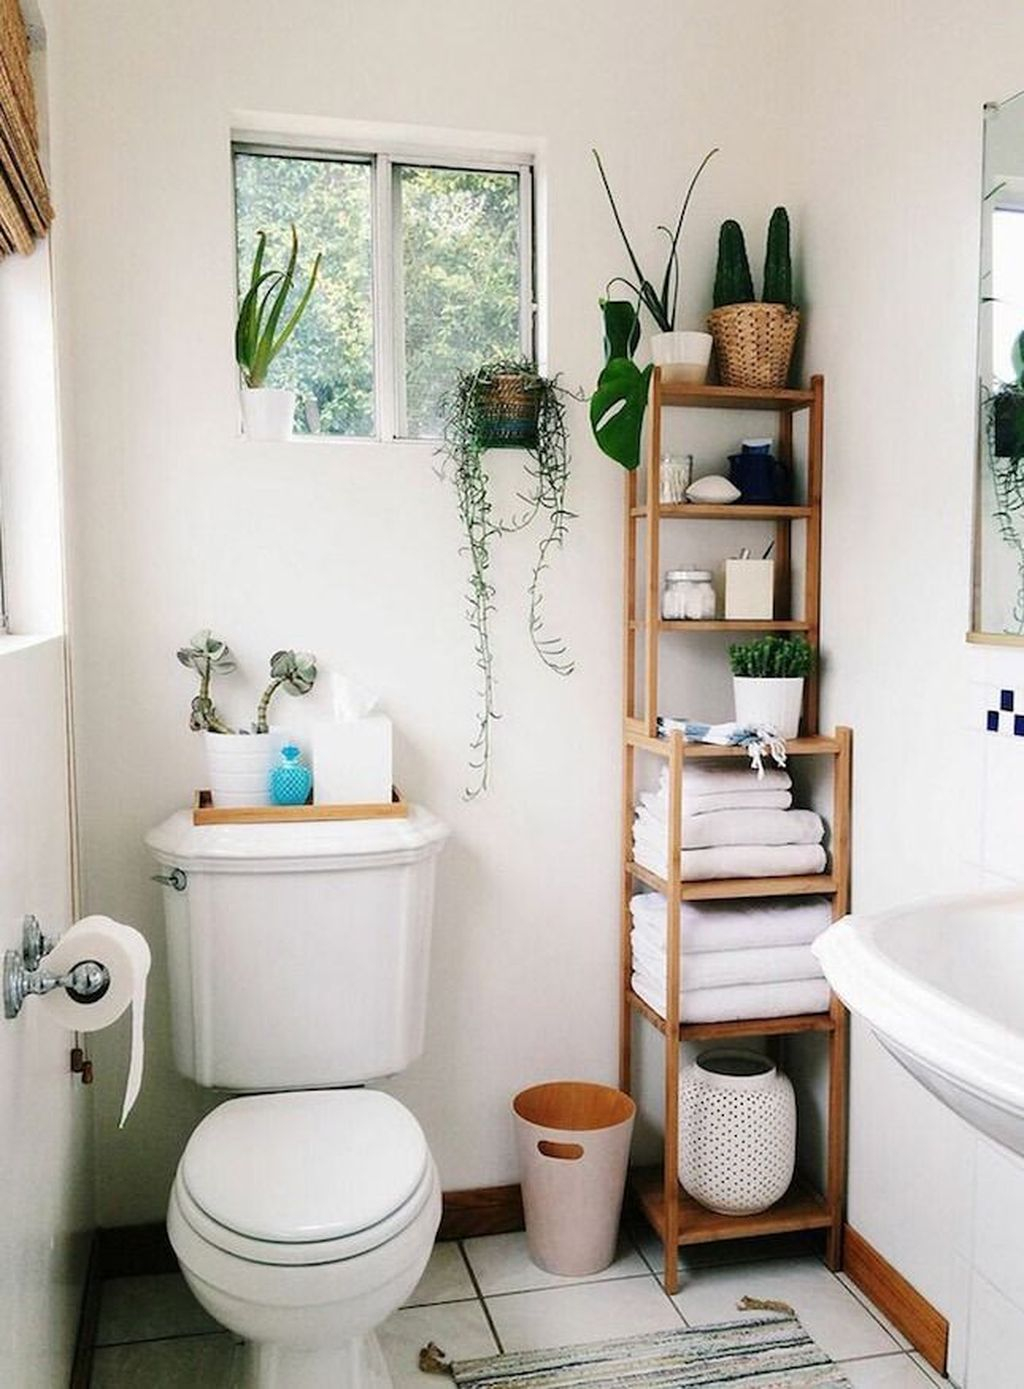 Minimalist Small Bathroom Remodeling On A Budget 17